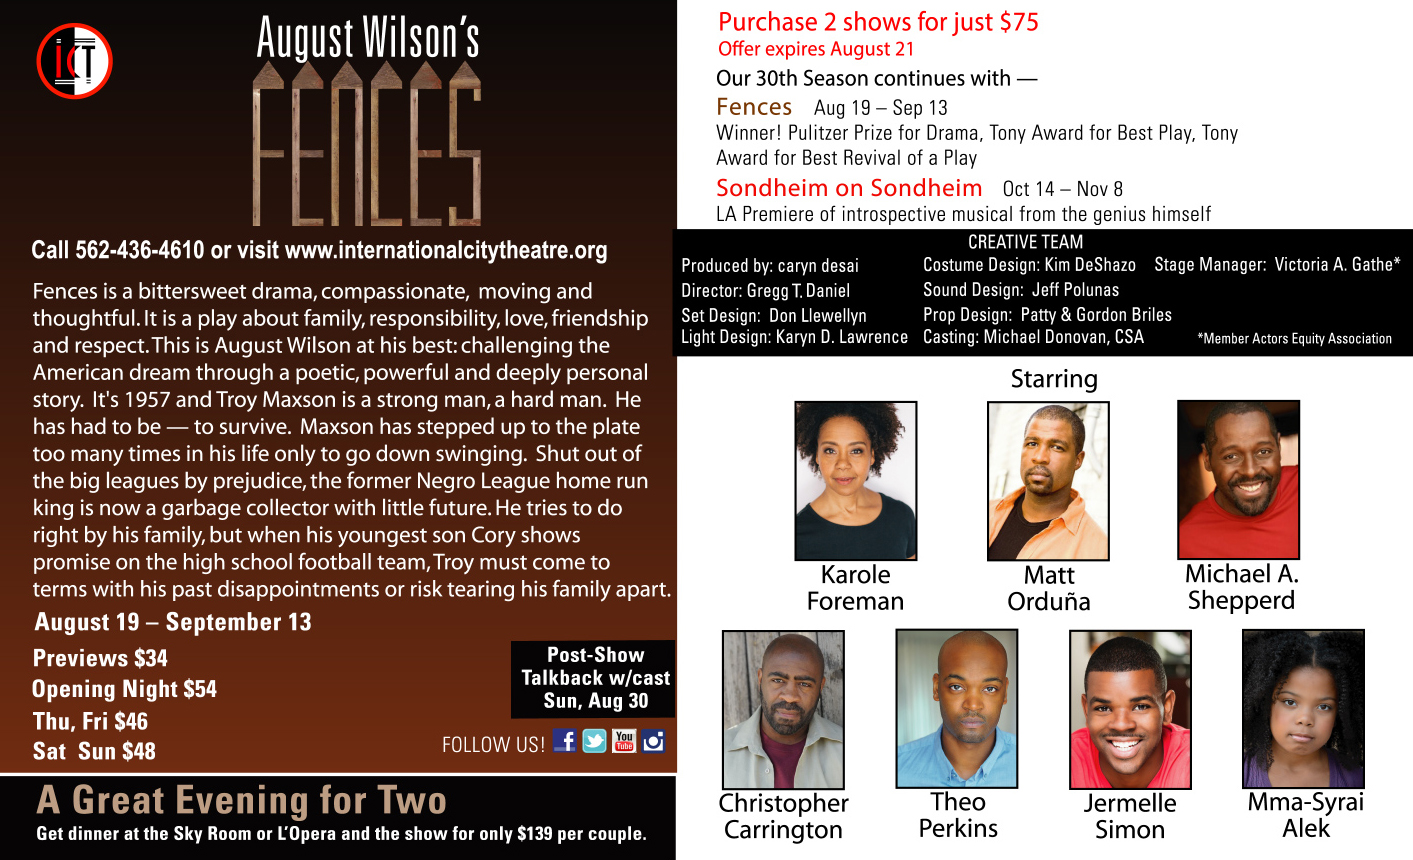 Fences Cast E-Card